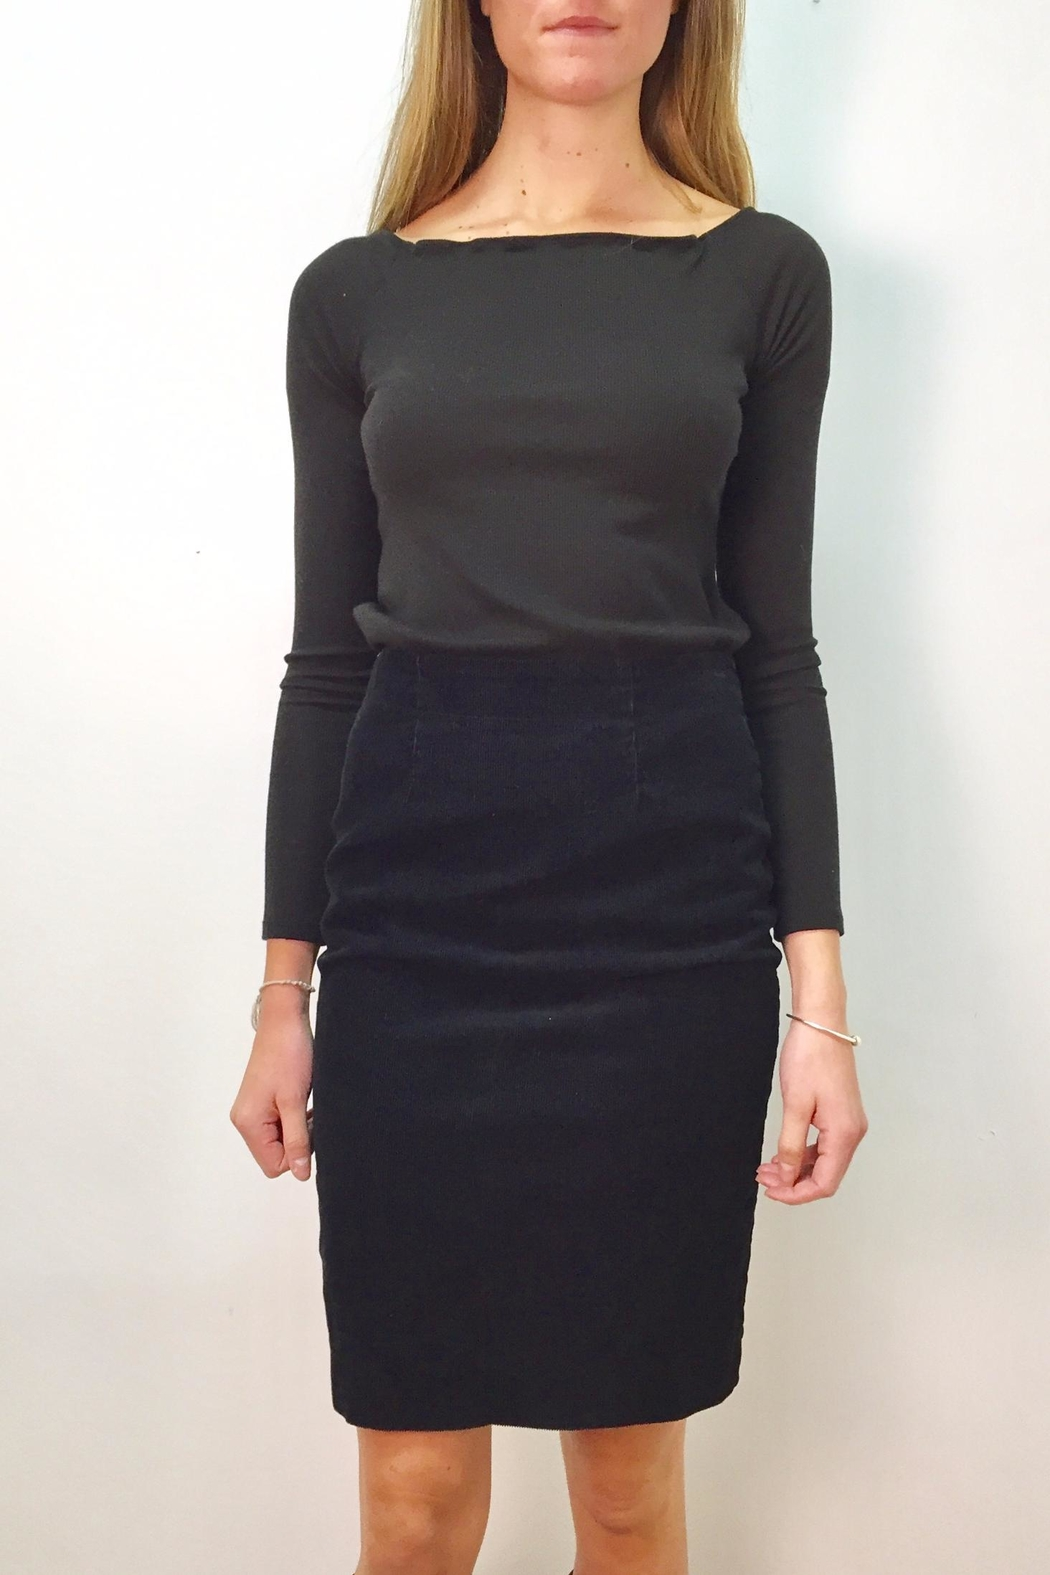 Prairie Underground Corduroy Pencil Skirt - Front Cropped Image